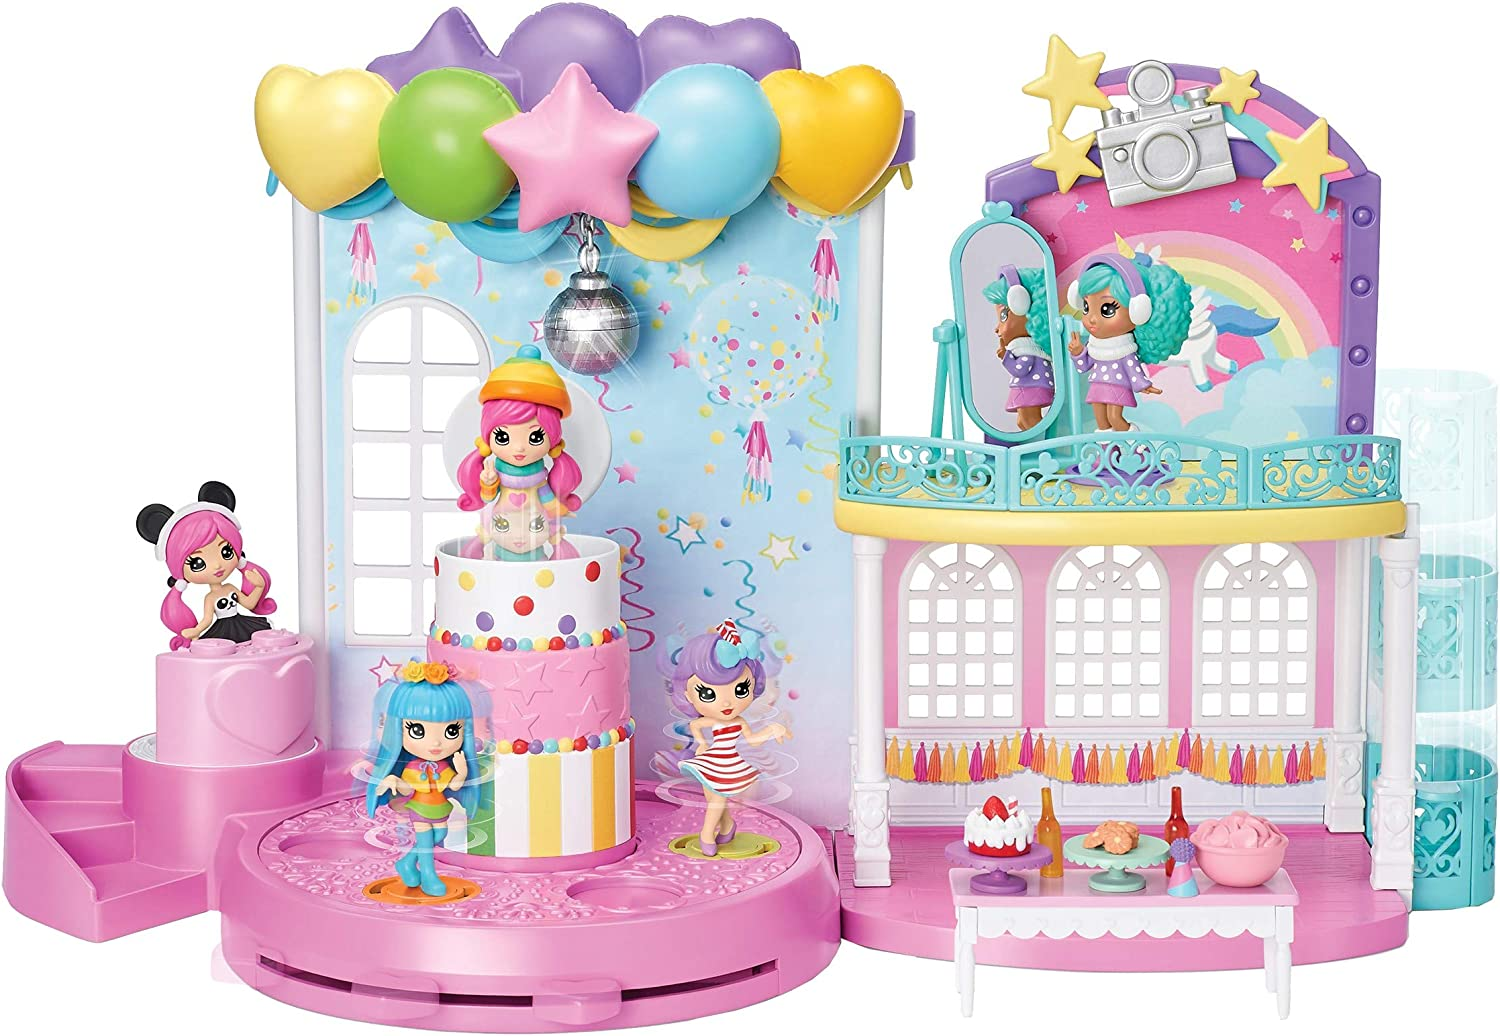 Multi-Colour Party Popteenies 6043875 Poptastic Party Playset